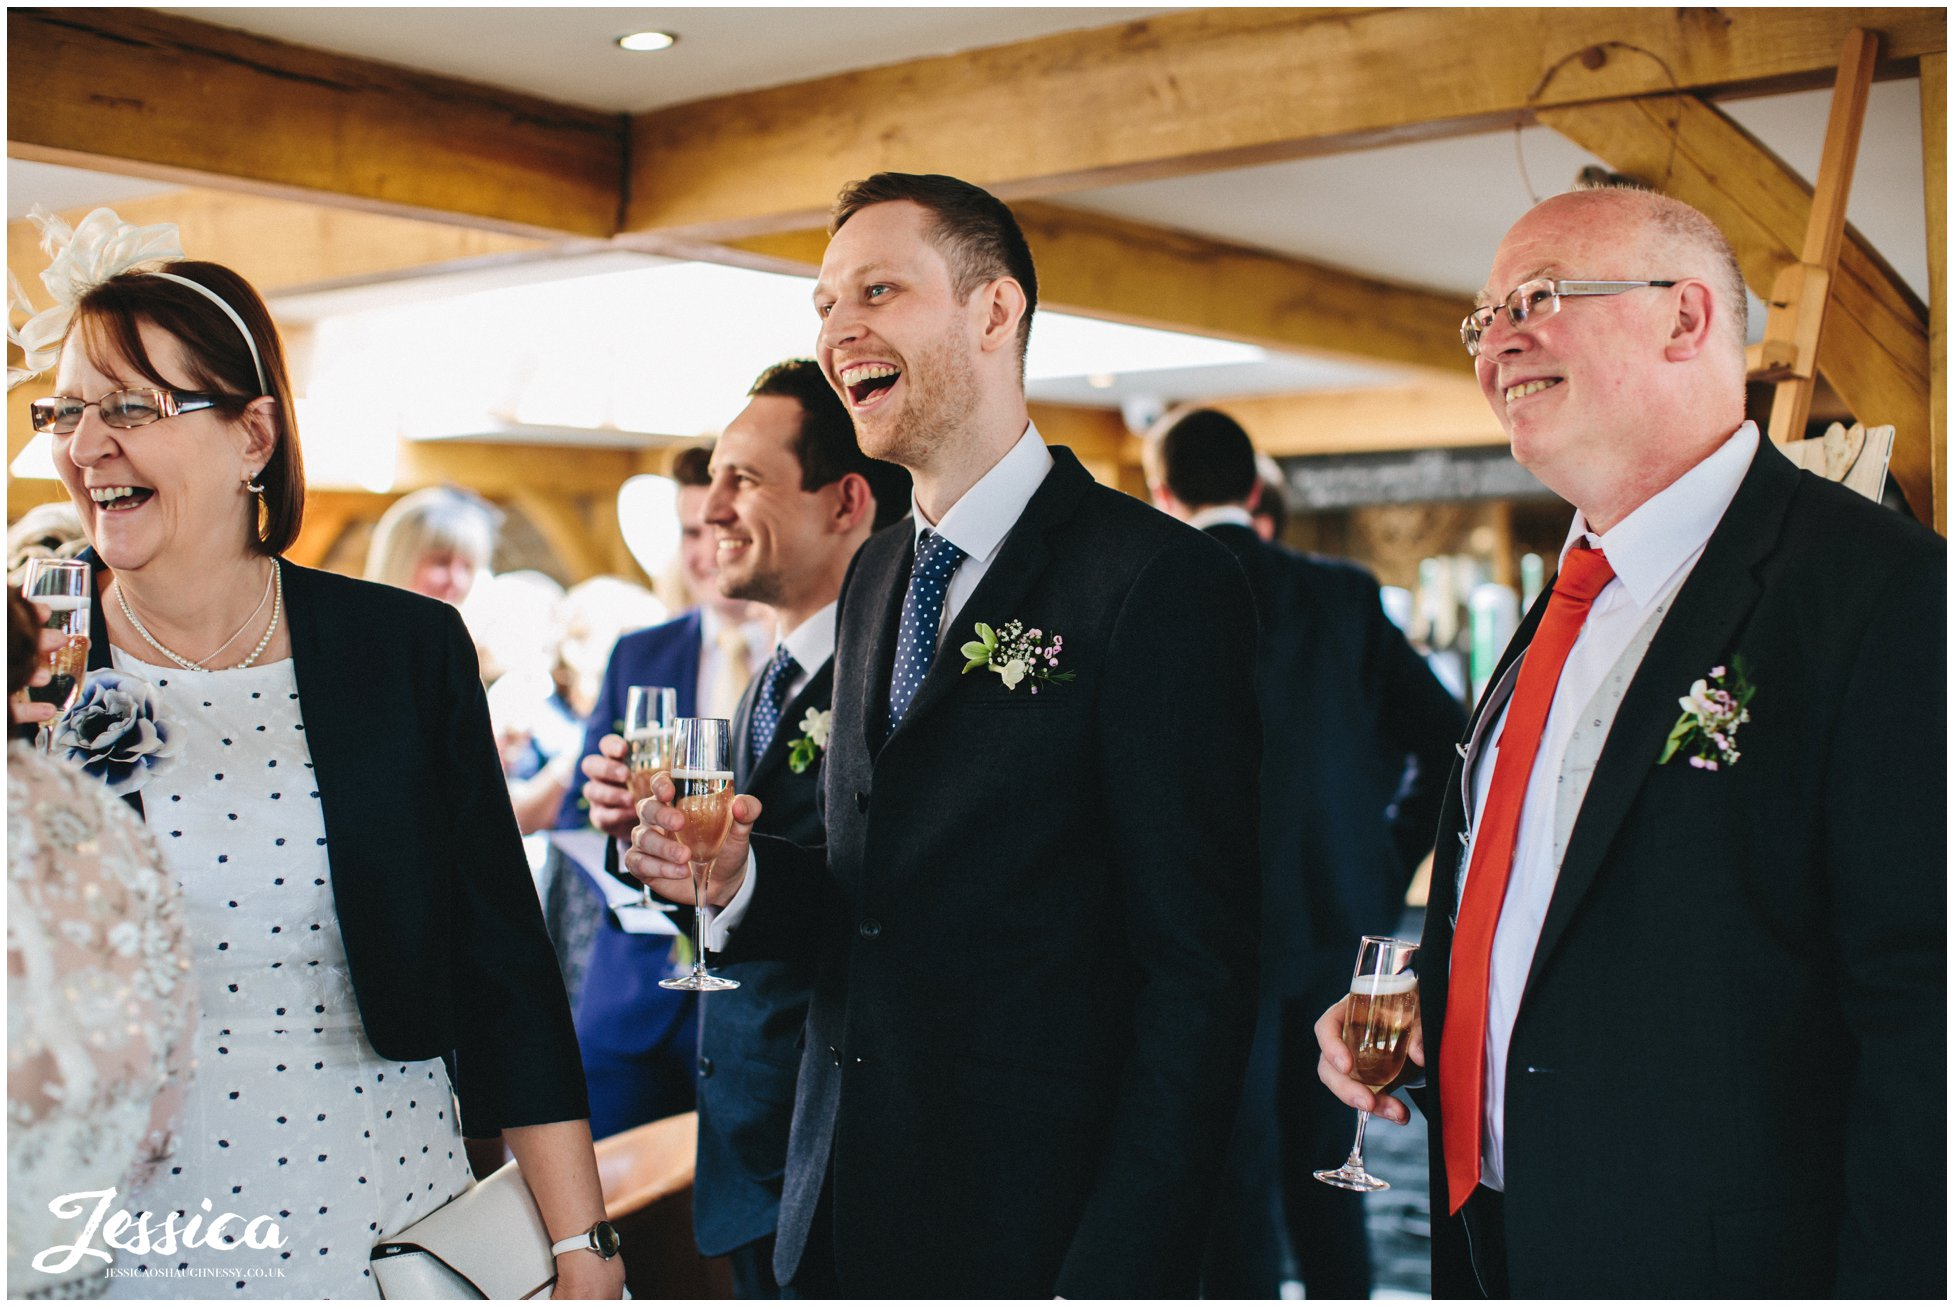 guests celebrating at tower hill barns in north wales